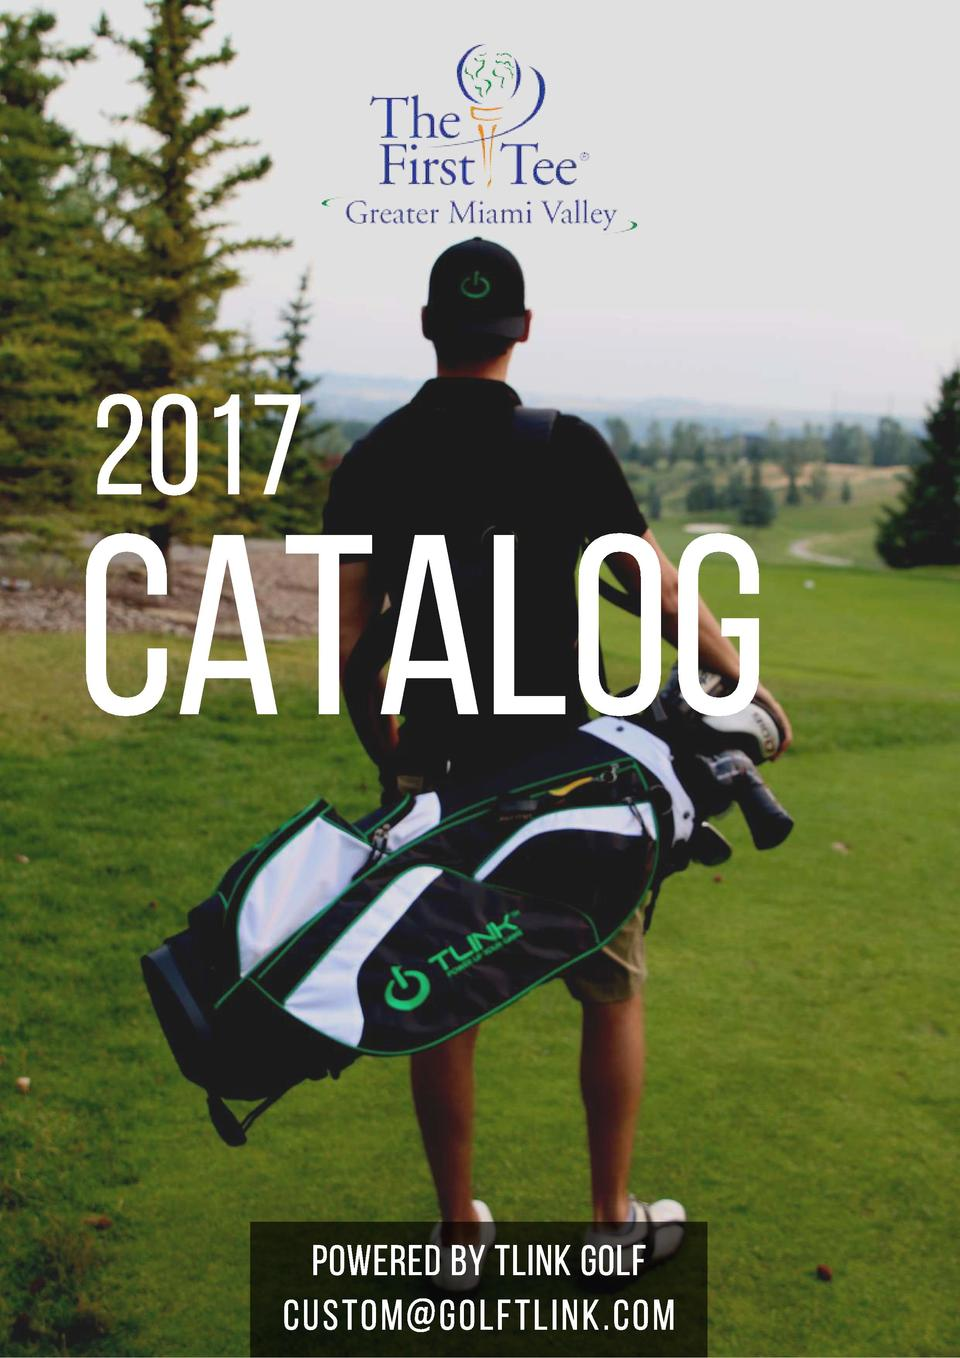 2017  CATALOG POWERED BY TLINK GOLF custom golftlink.com